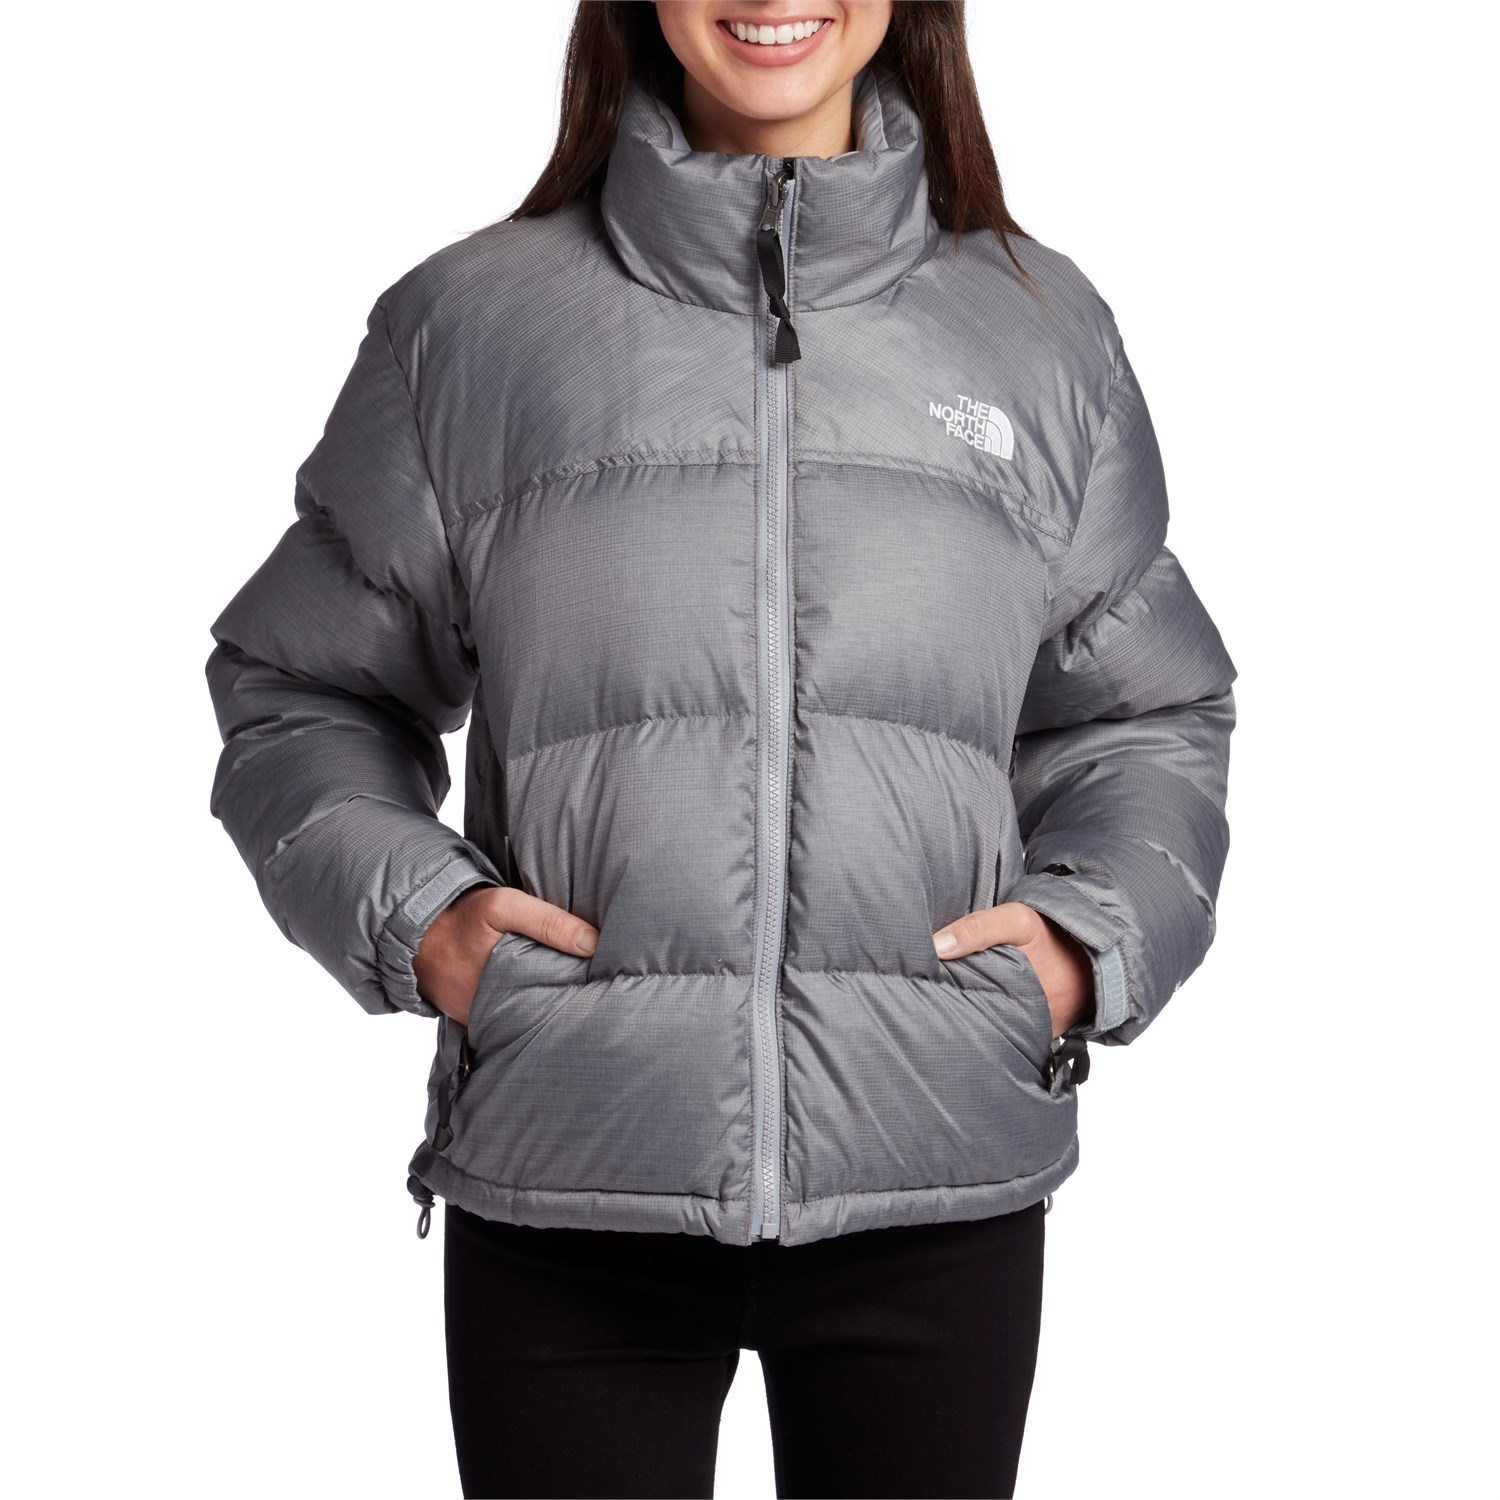 298a9d97e The North Face 1996 Retro Nuptse Jacket - Women's